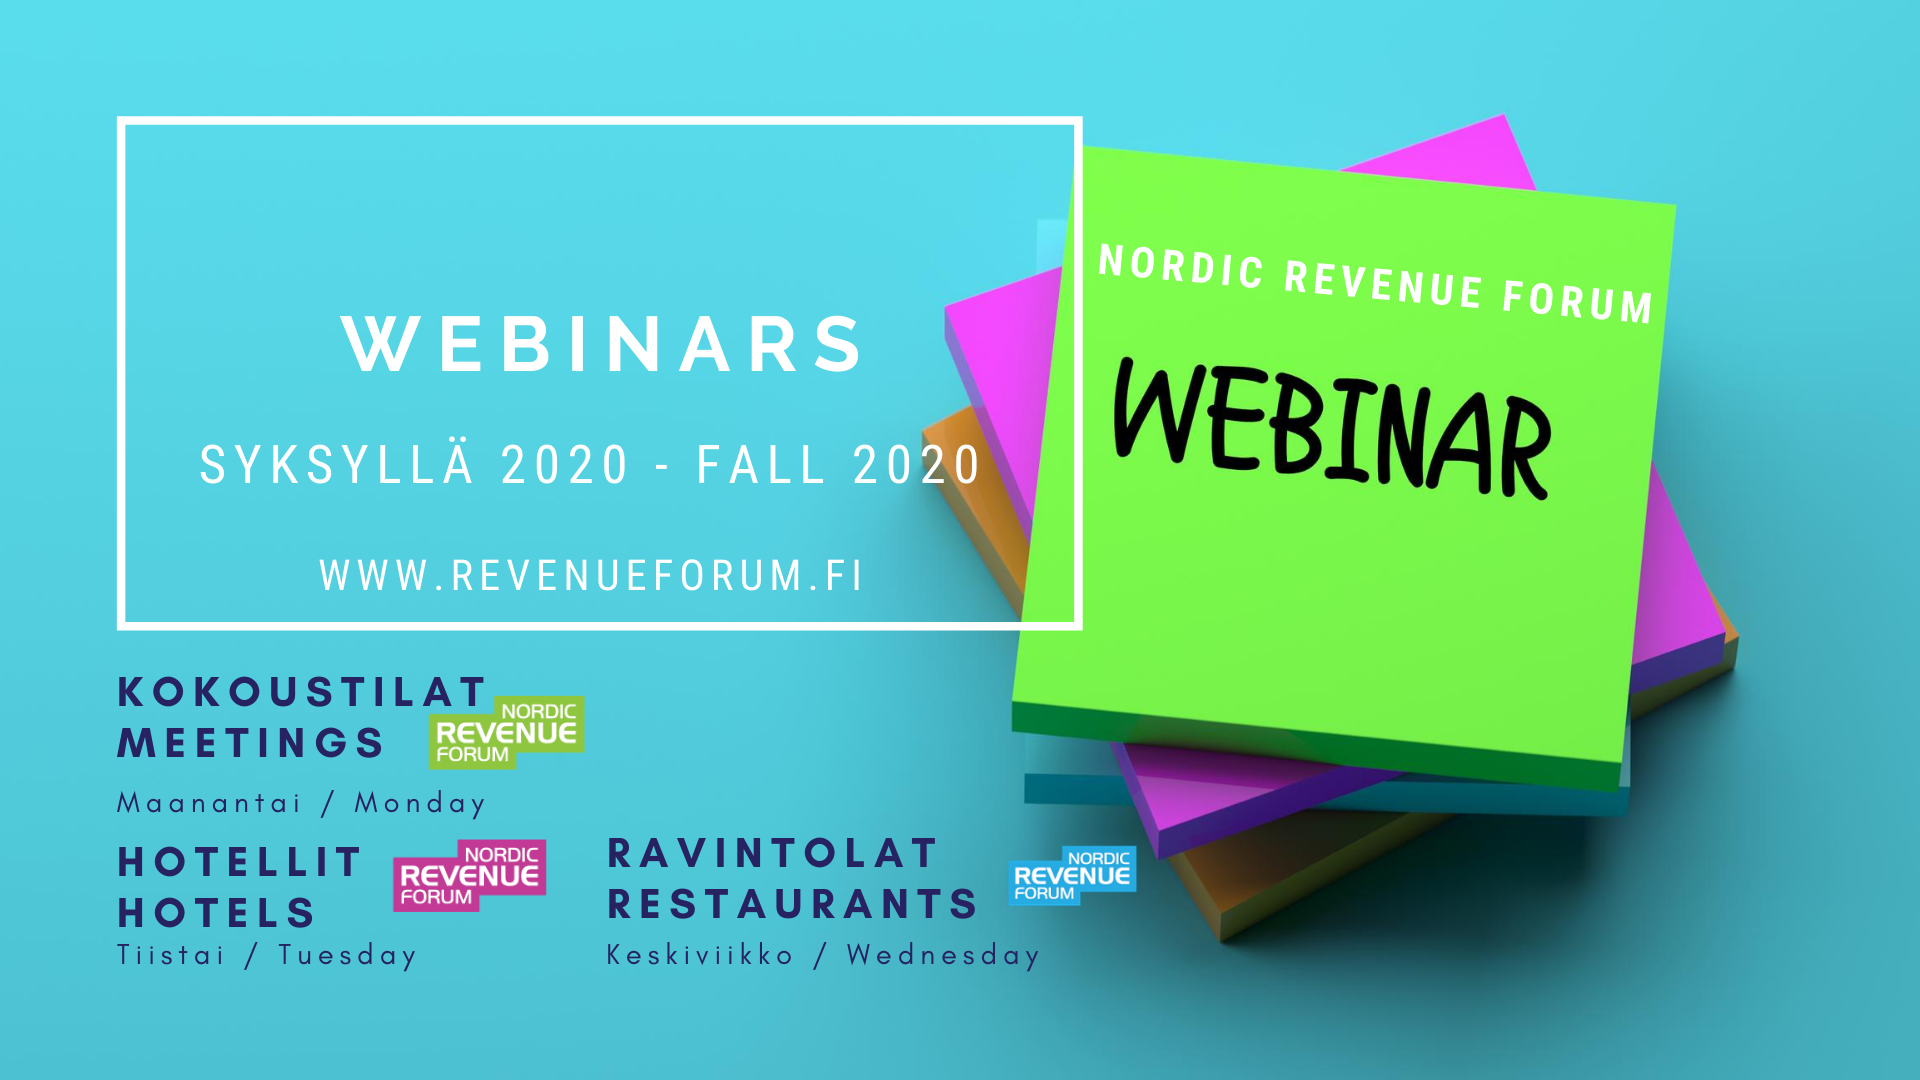 Rebuild 2021 Nordic Revenue Forum webinars for hotels, meetings and events and restaurants in the fall 2020